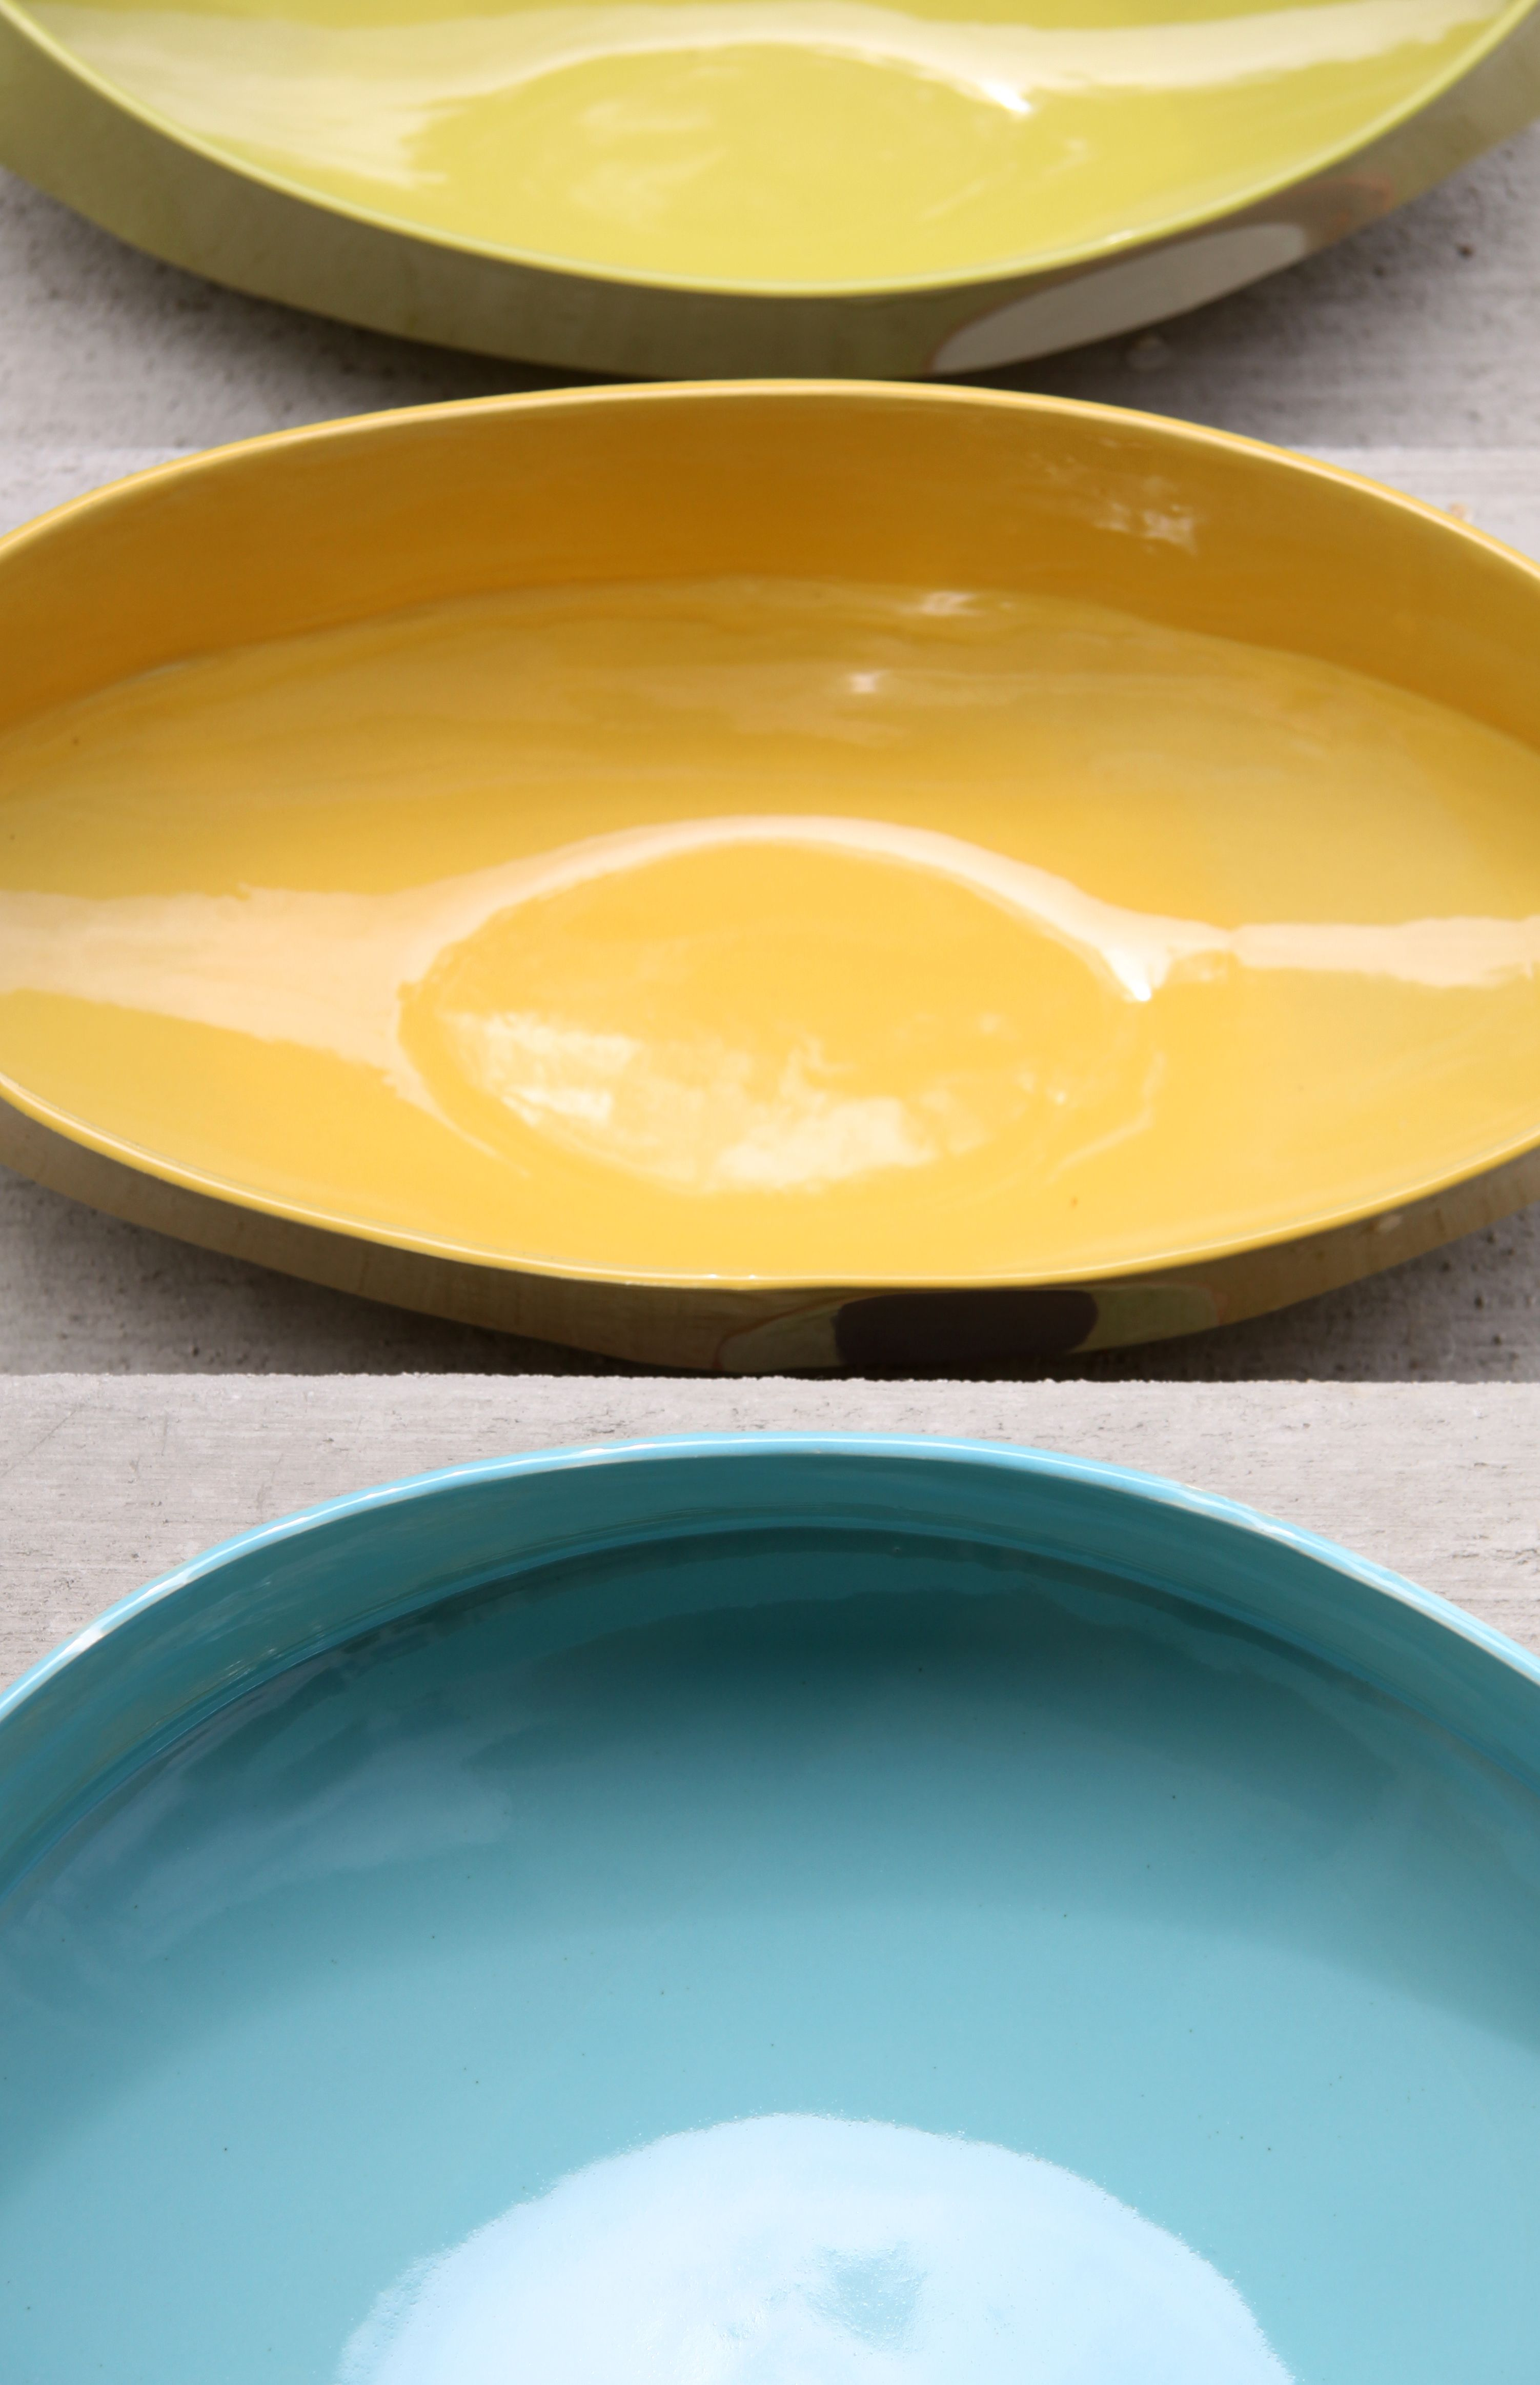 Close up of contemporary ceramic bowls made by Jill Zeidler